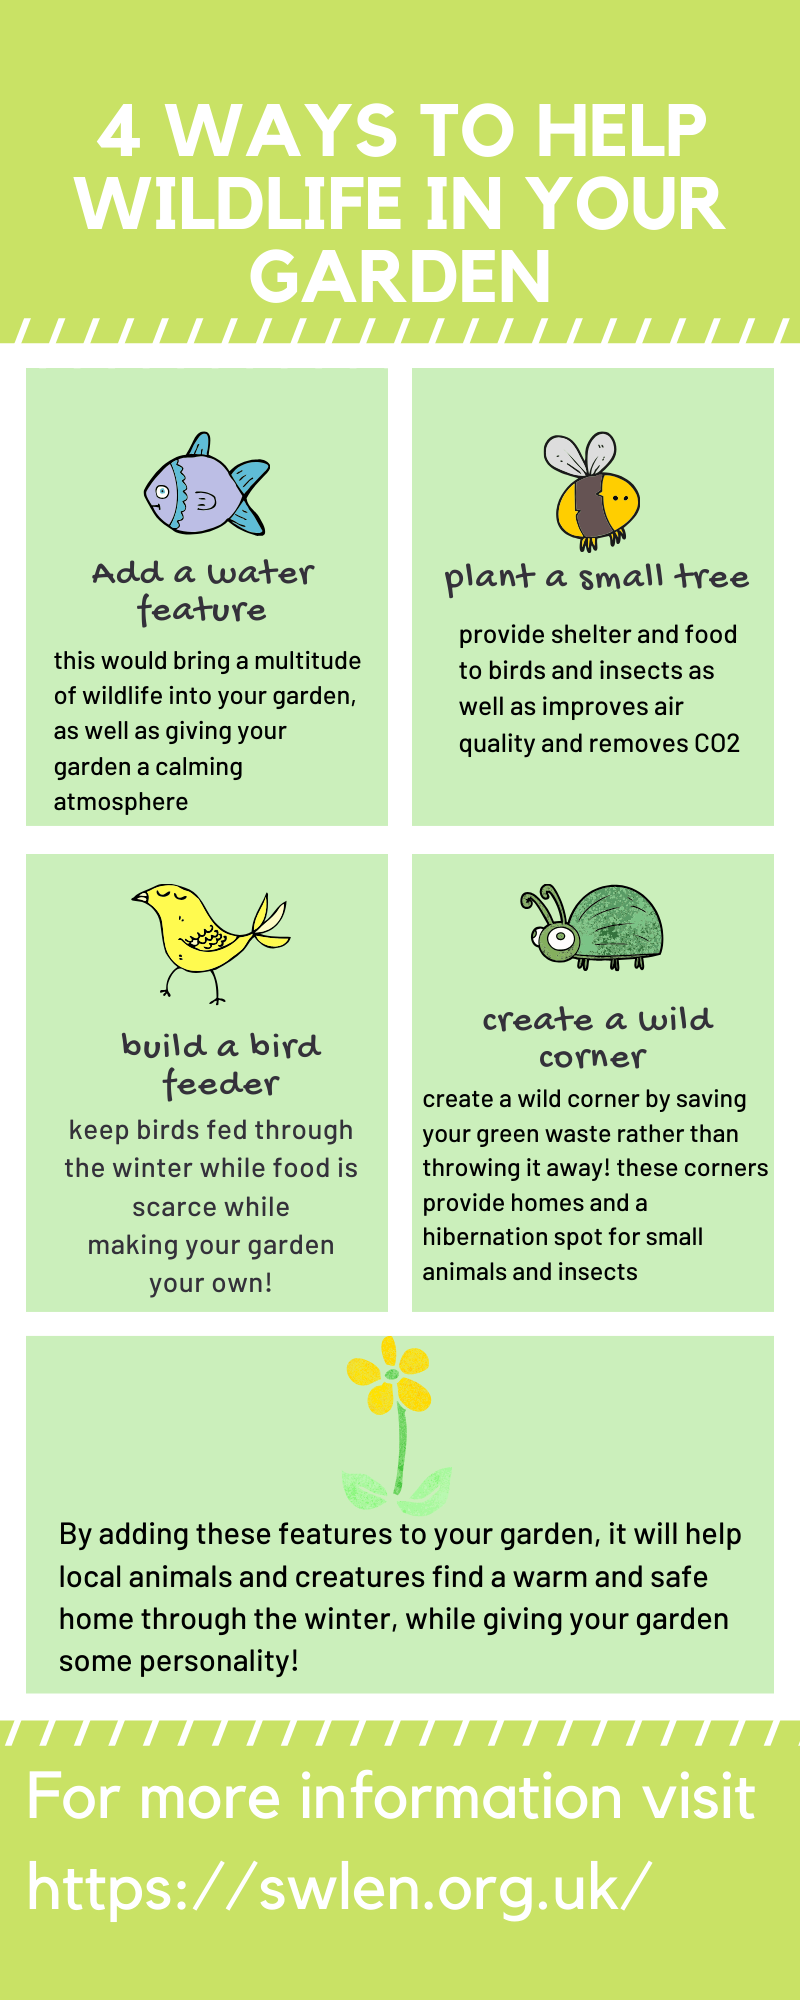 Here Are Just A Few Tips And Ways To Help Wildlife Grow And